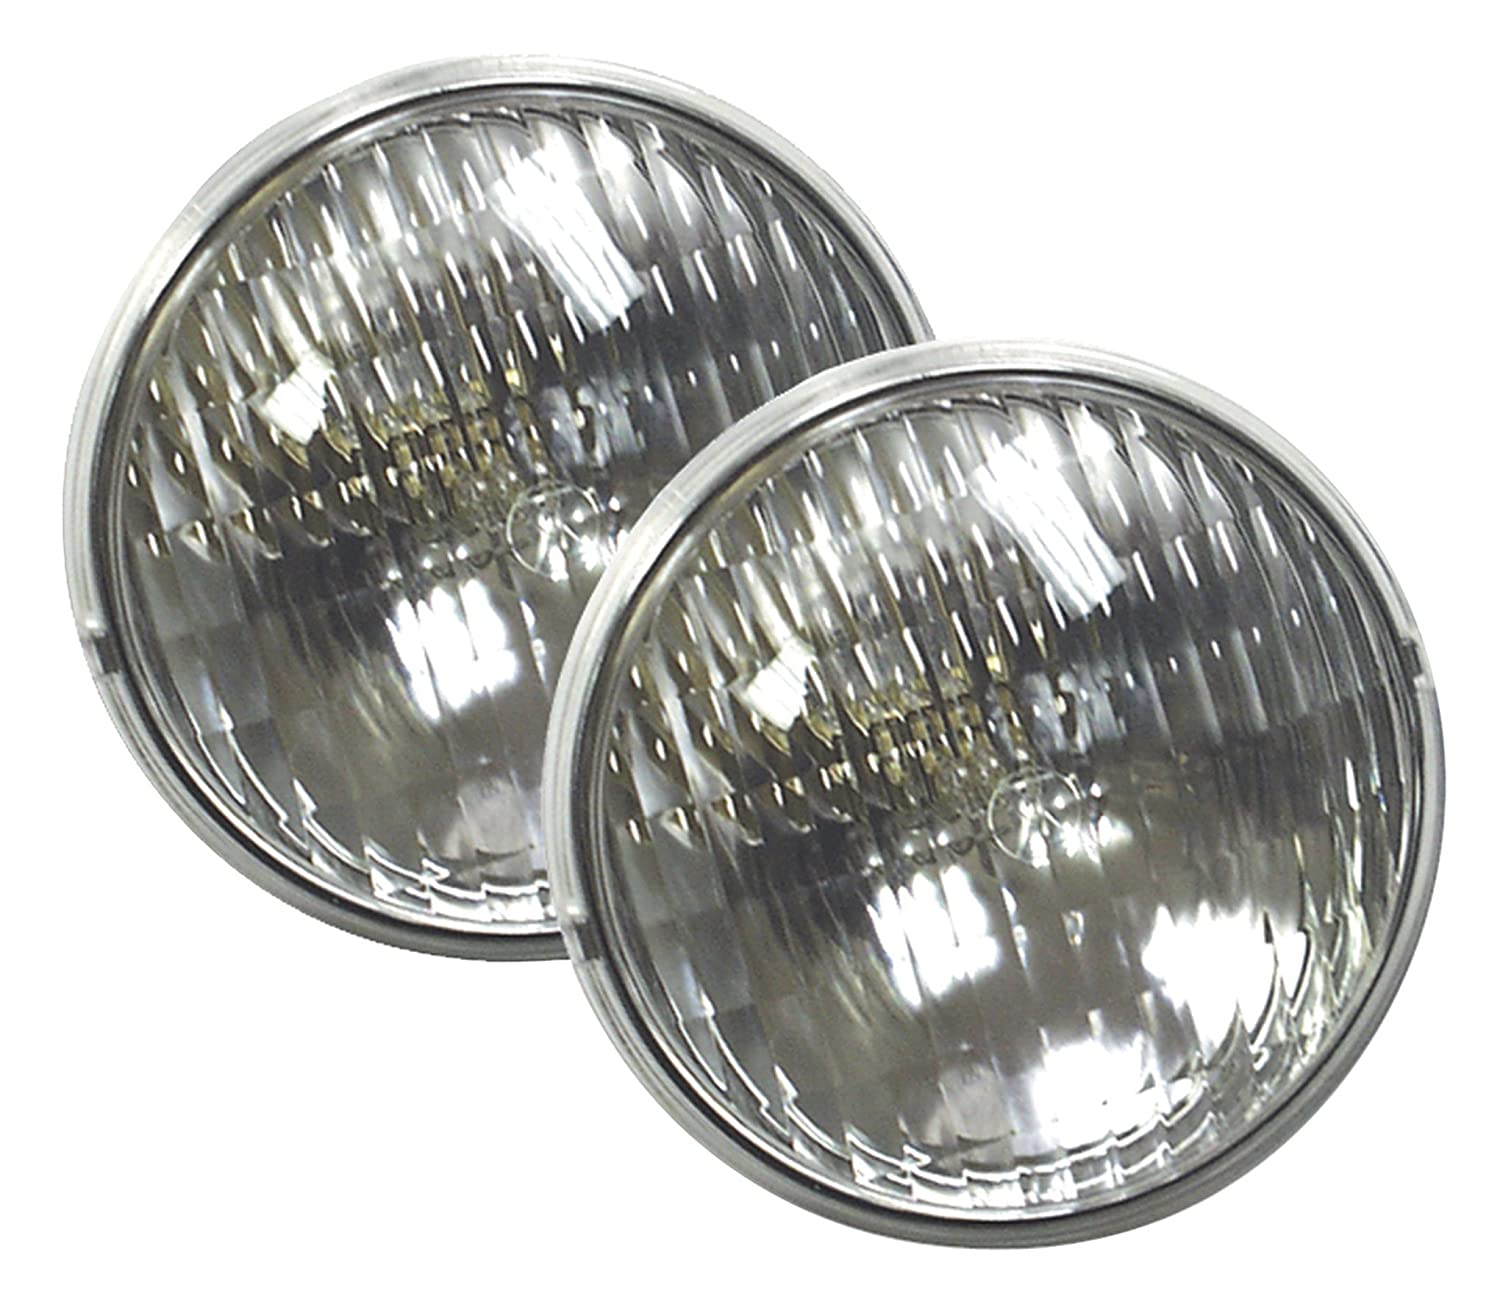 Replacement Lens For Malibu Landscape Lights: Pulling Apart Headlights To Clean And Clear Amber